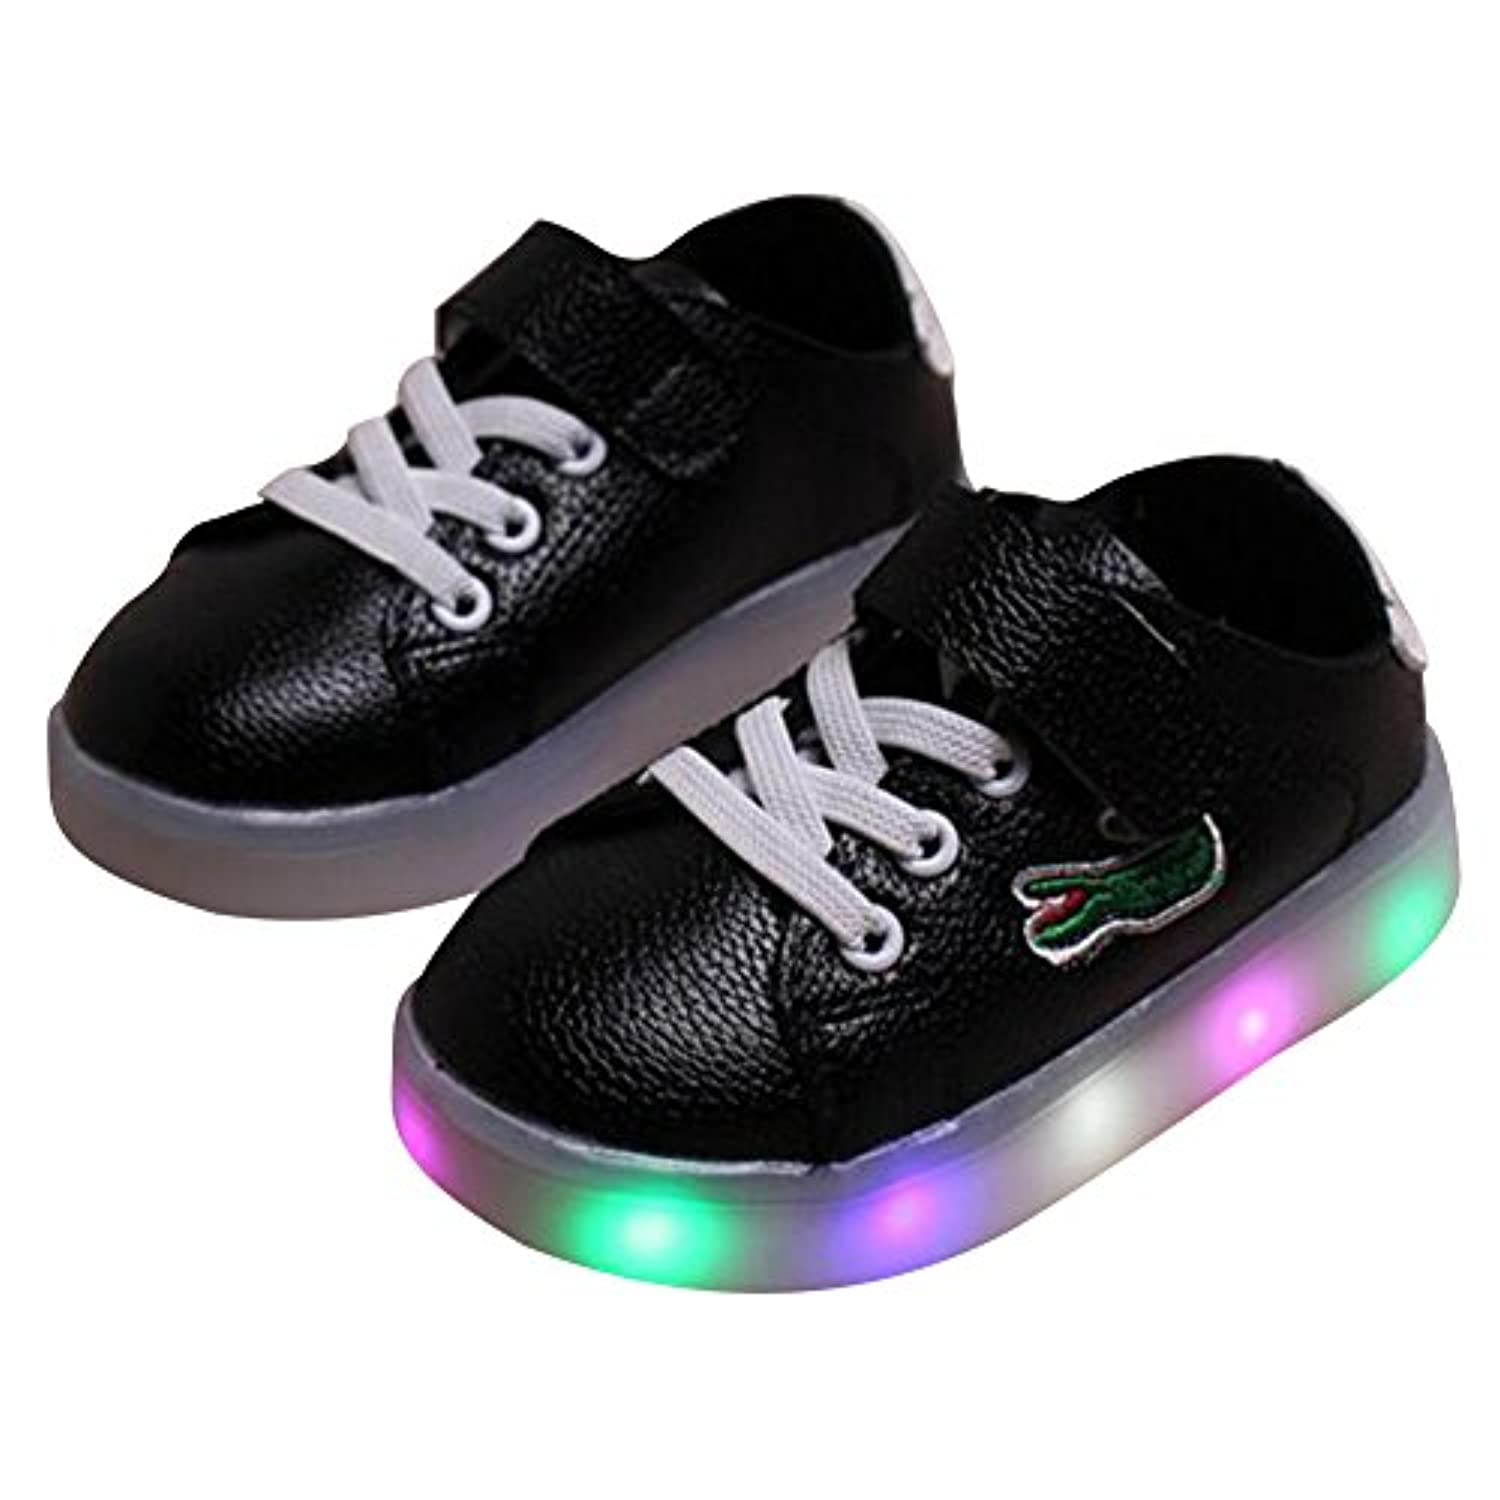 Highdas Boys Girls LED Shoes Cute Crocodile Anti Slip Light Up Sneakers Black Size 21